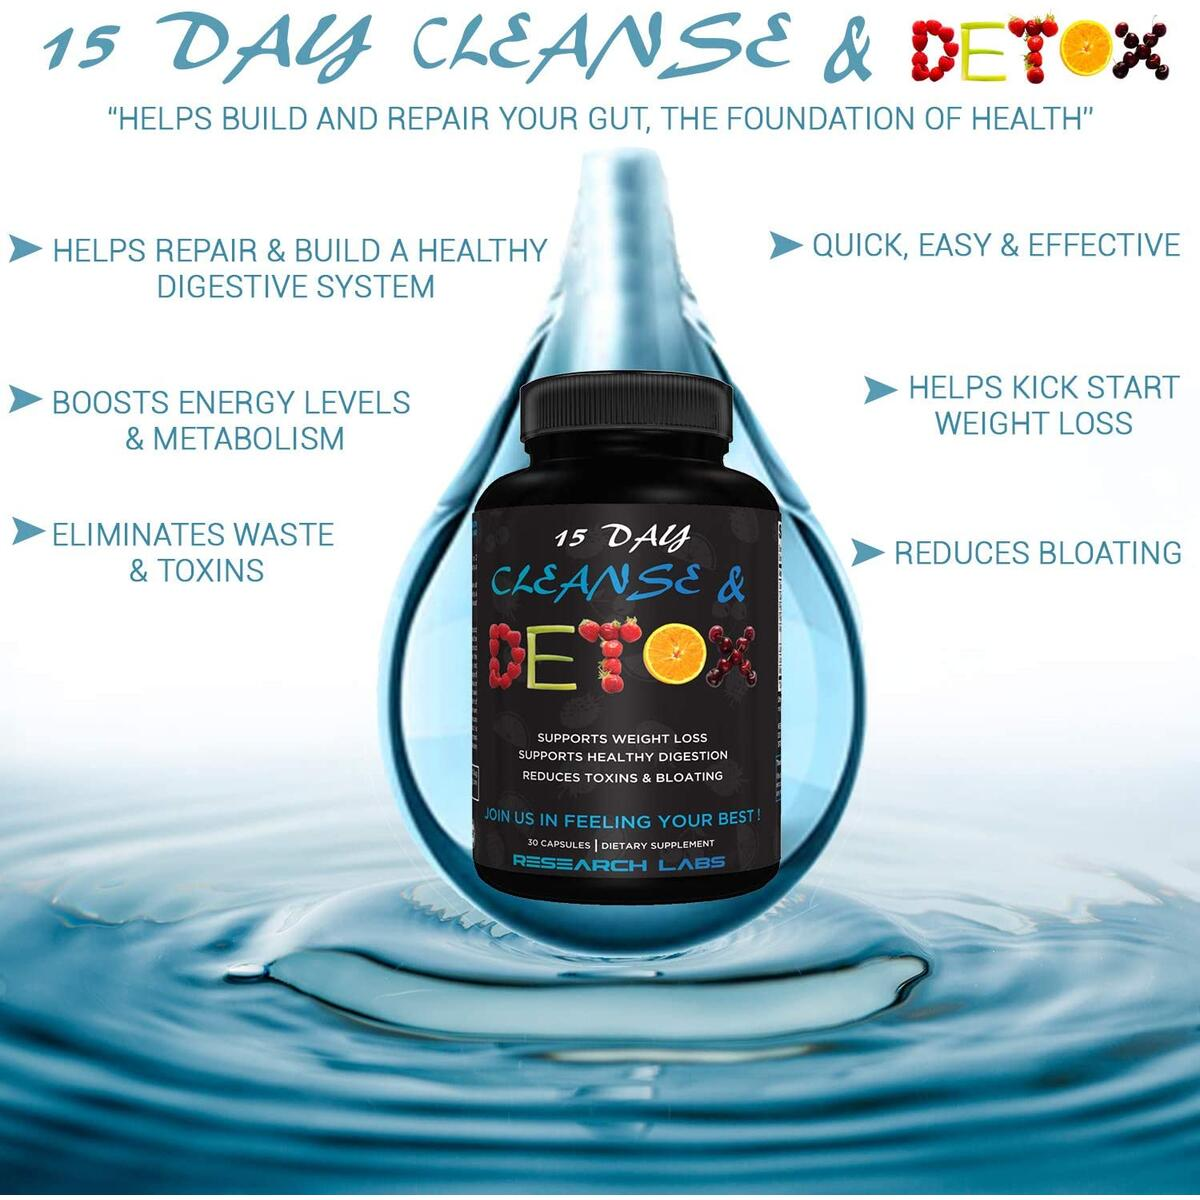 2 for 1 Deal Research Labs 15 Day Colon Cleanse & Detox for Weight Loss - Constipation Relief - Flushes Toxins, Boosts Energy. Clinically Researched Safe and Effective Formula